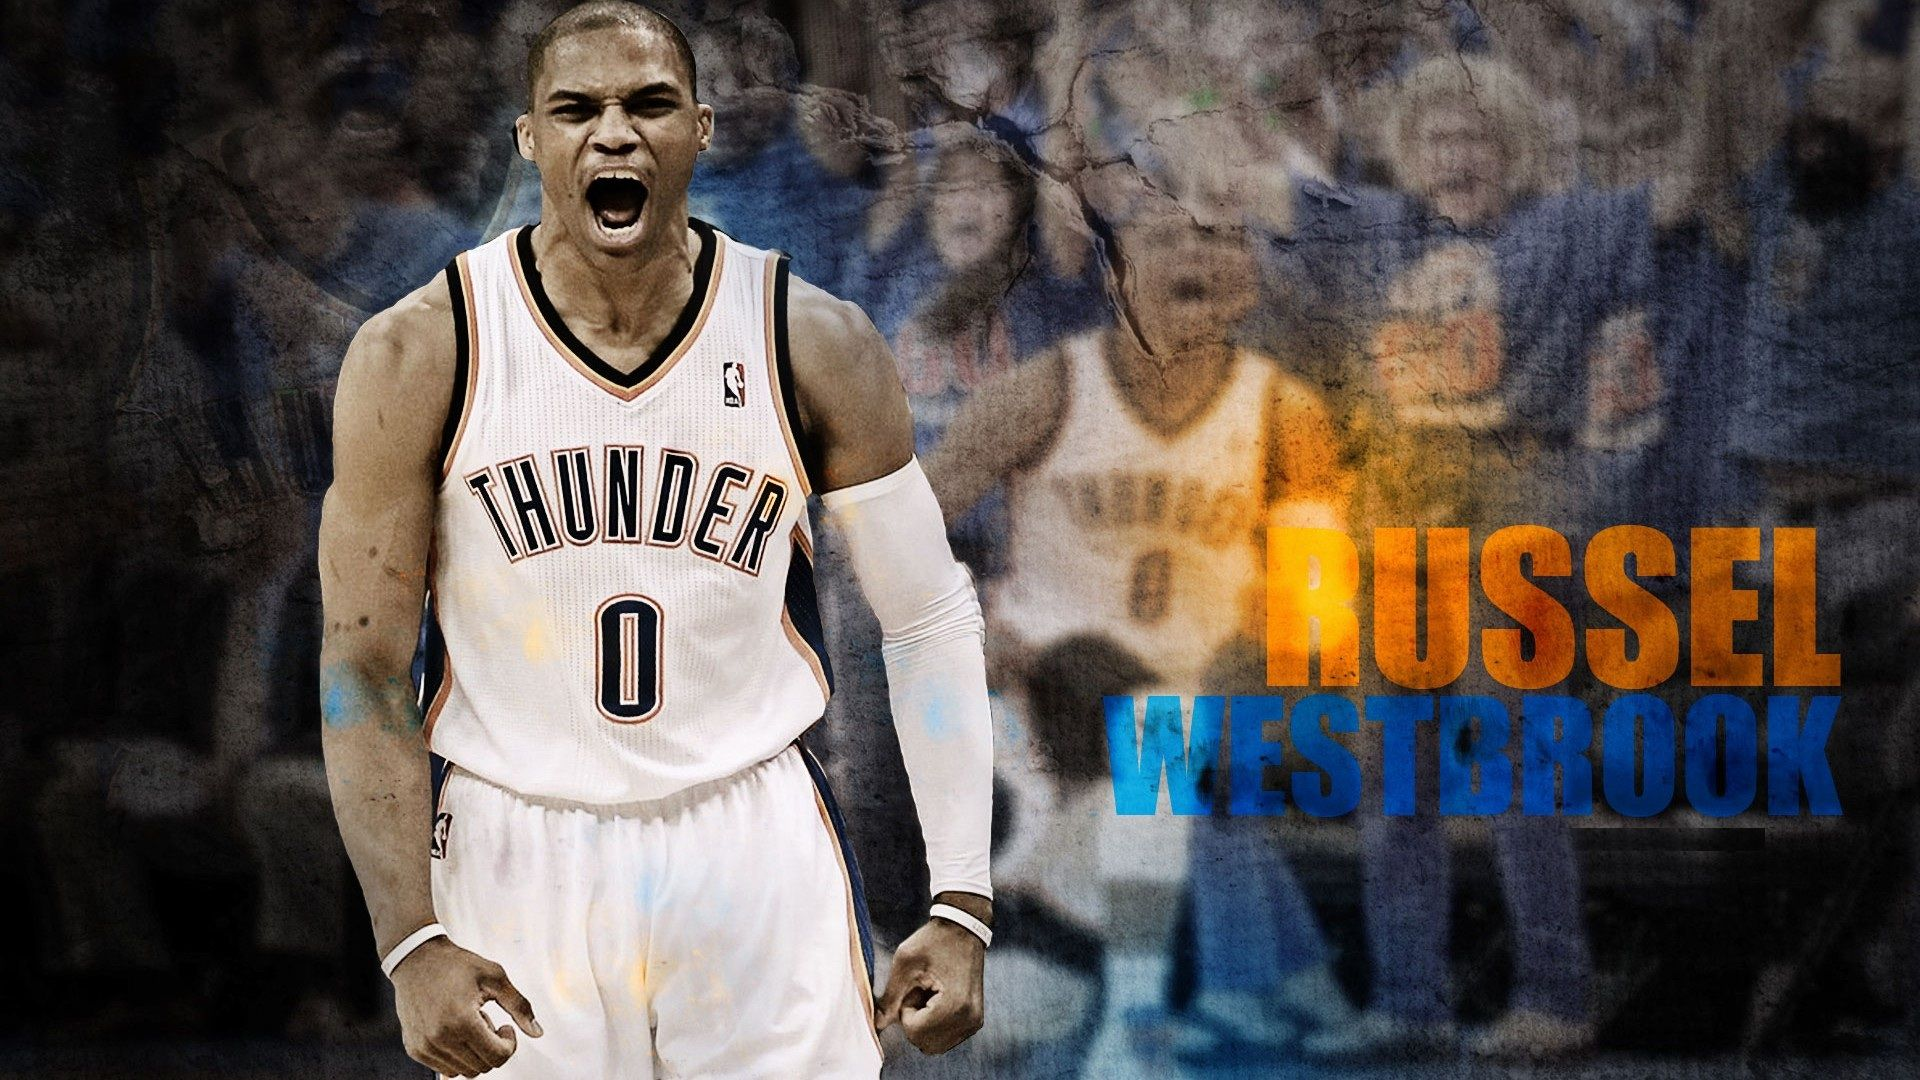 Russell westbrook wallpaper hd wallpapersafari